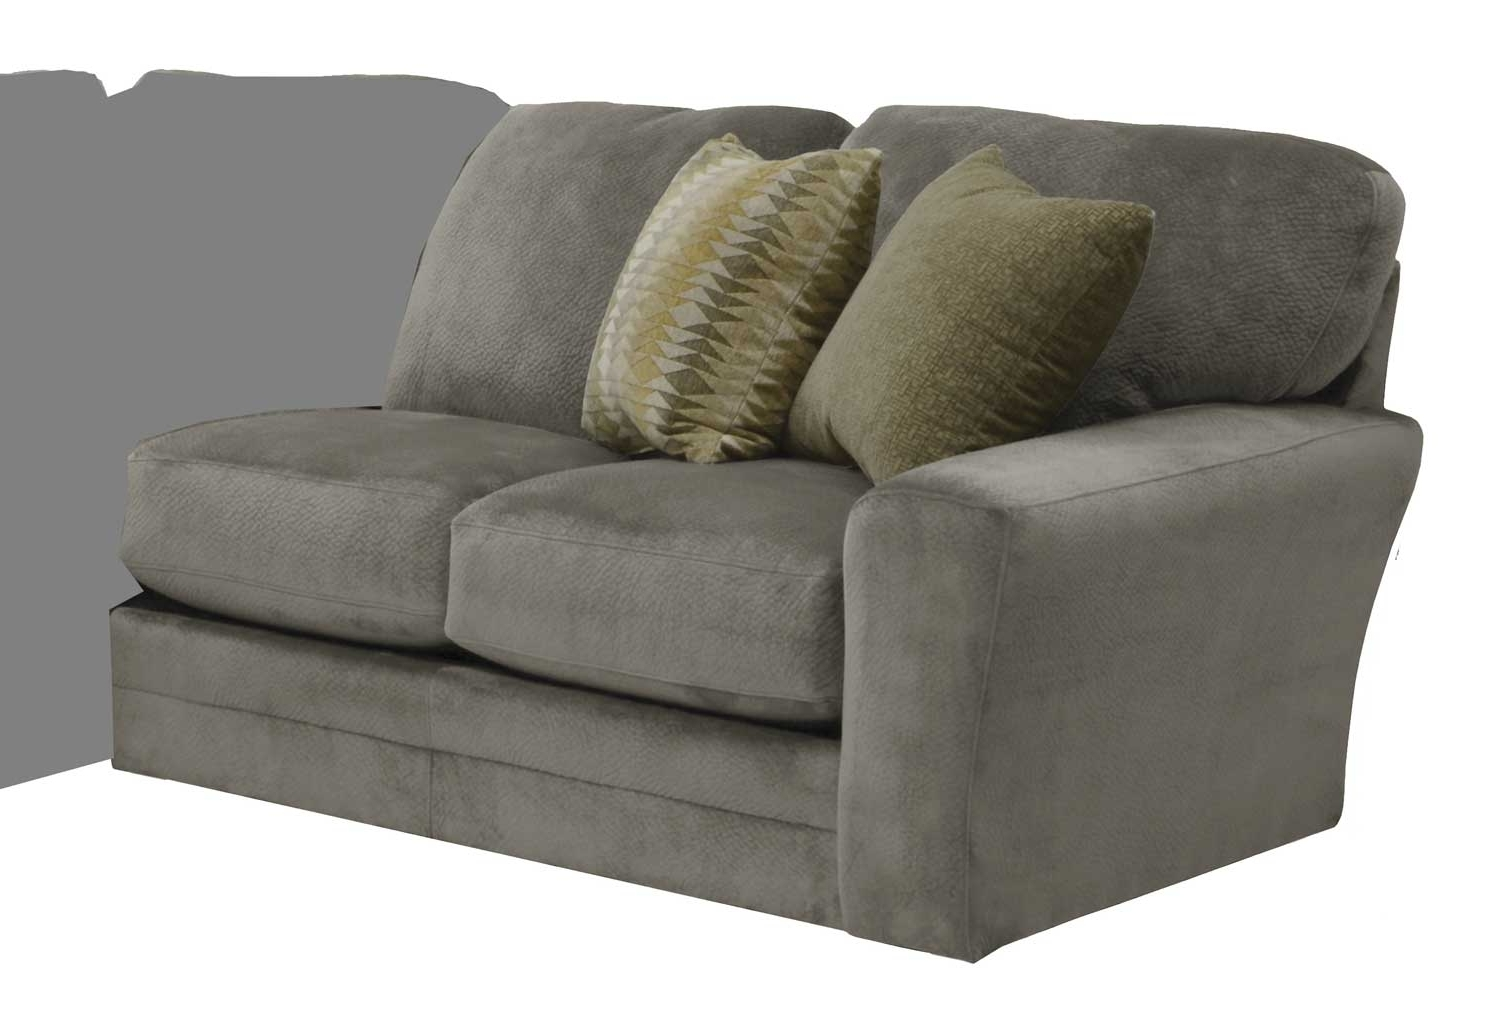 Sofas With Removable Cover Pertaining To Preferred Removable Cover Sofa – Home And Textiles (View 11 of 15)